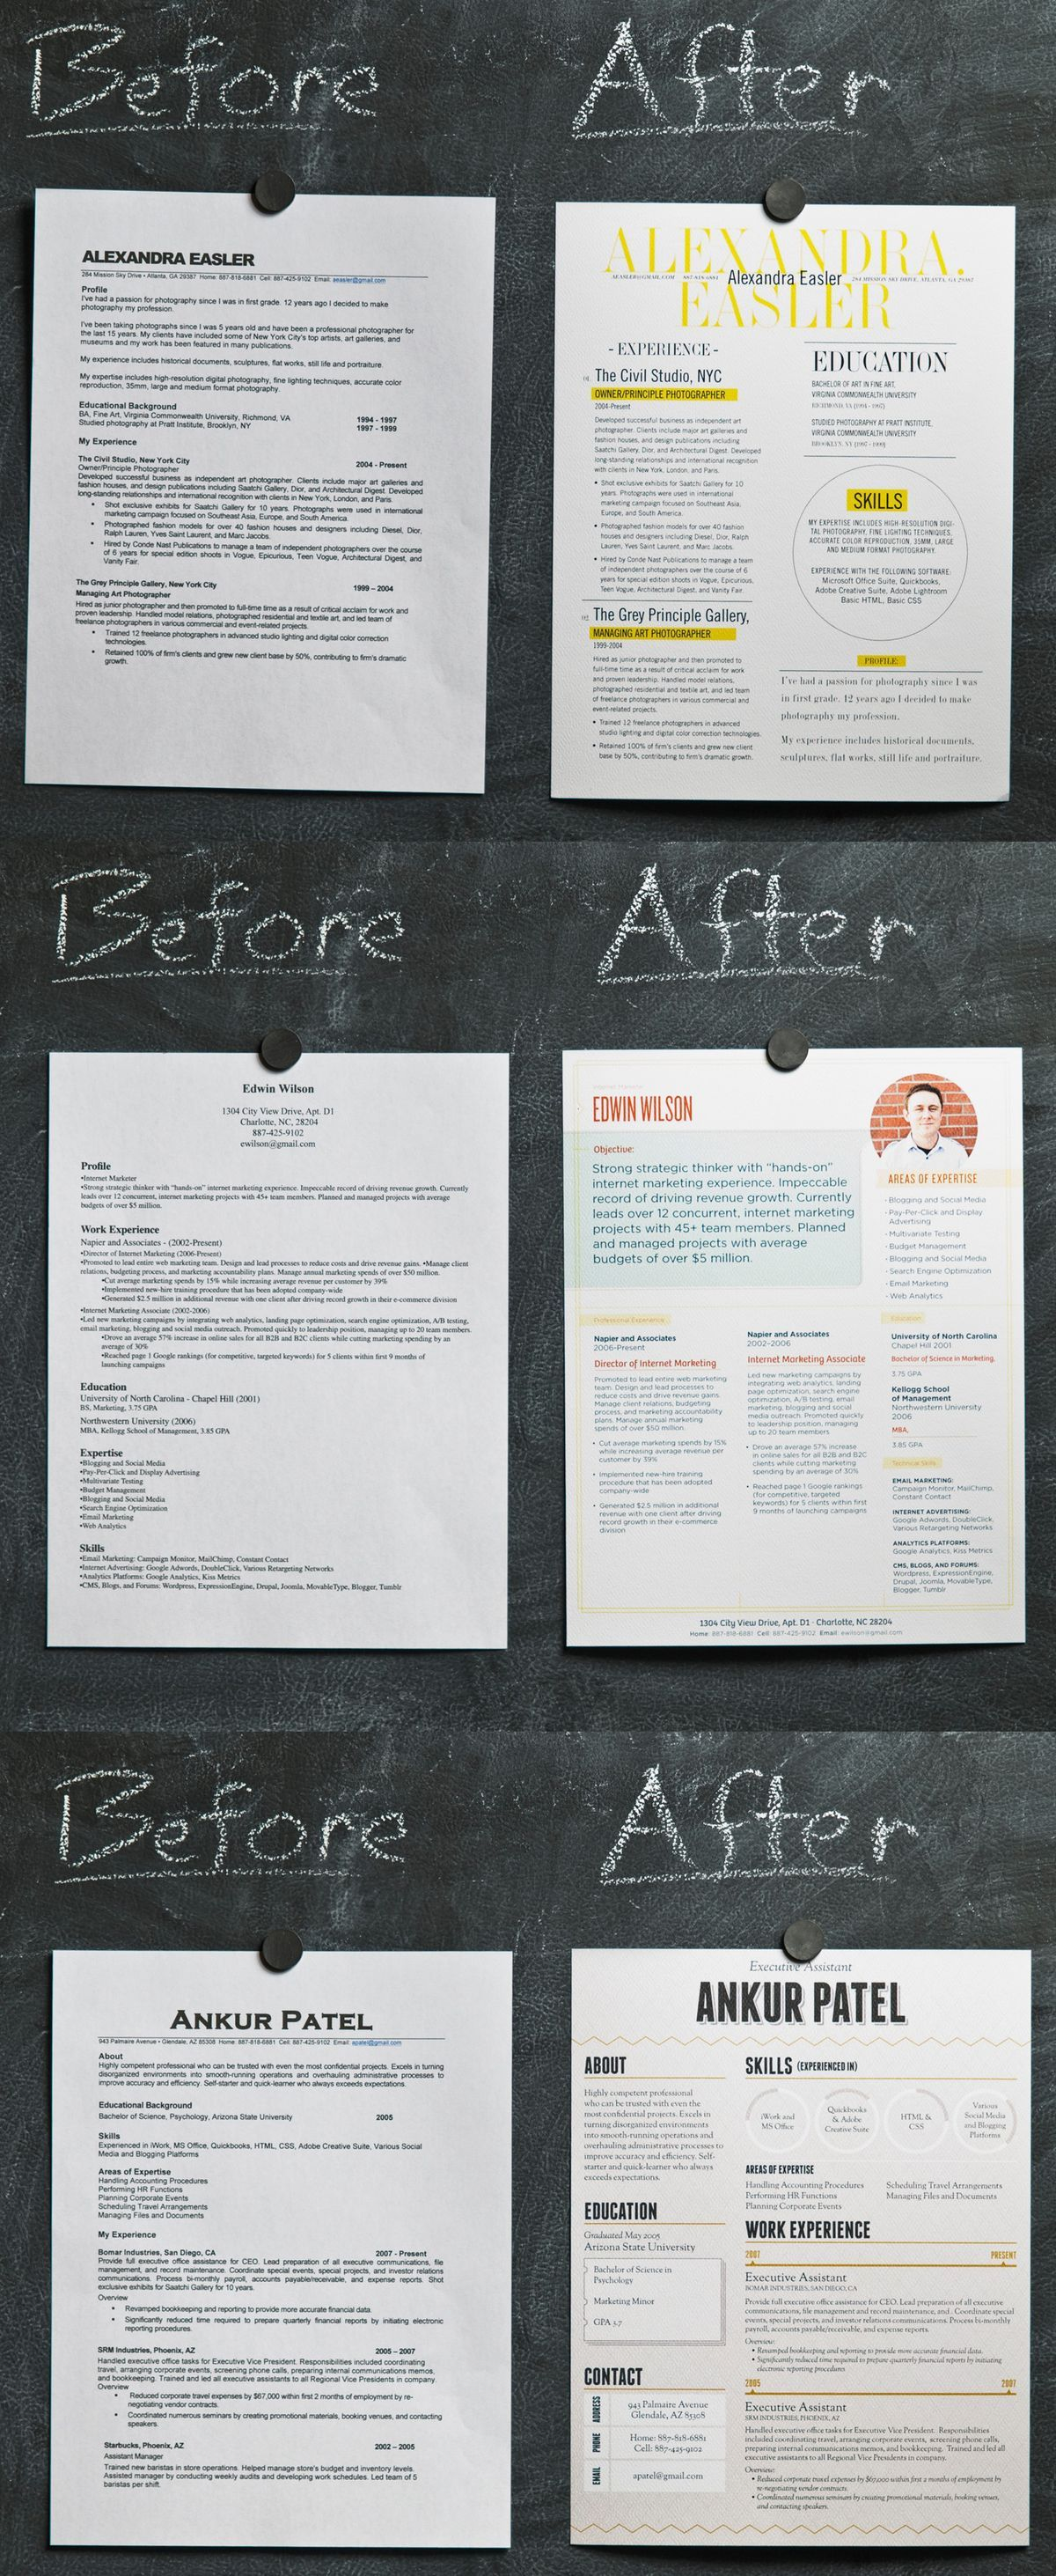 Make A Quick Resume Stunning Can Beautiful Design Make Your Resume Stand Out  Tutorials .